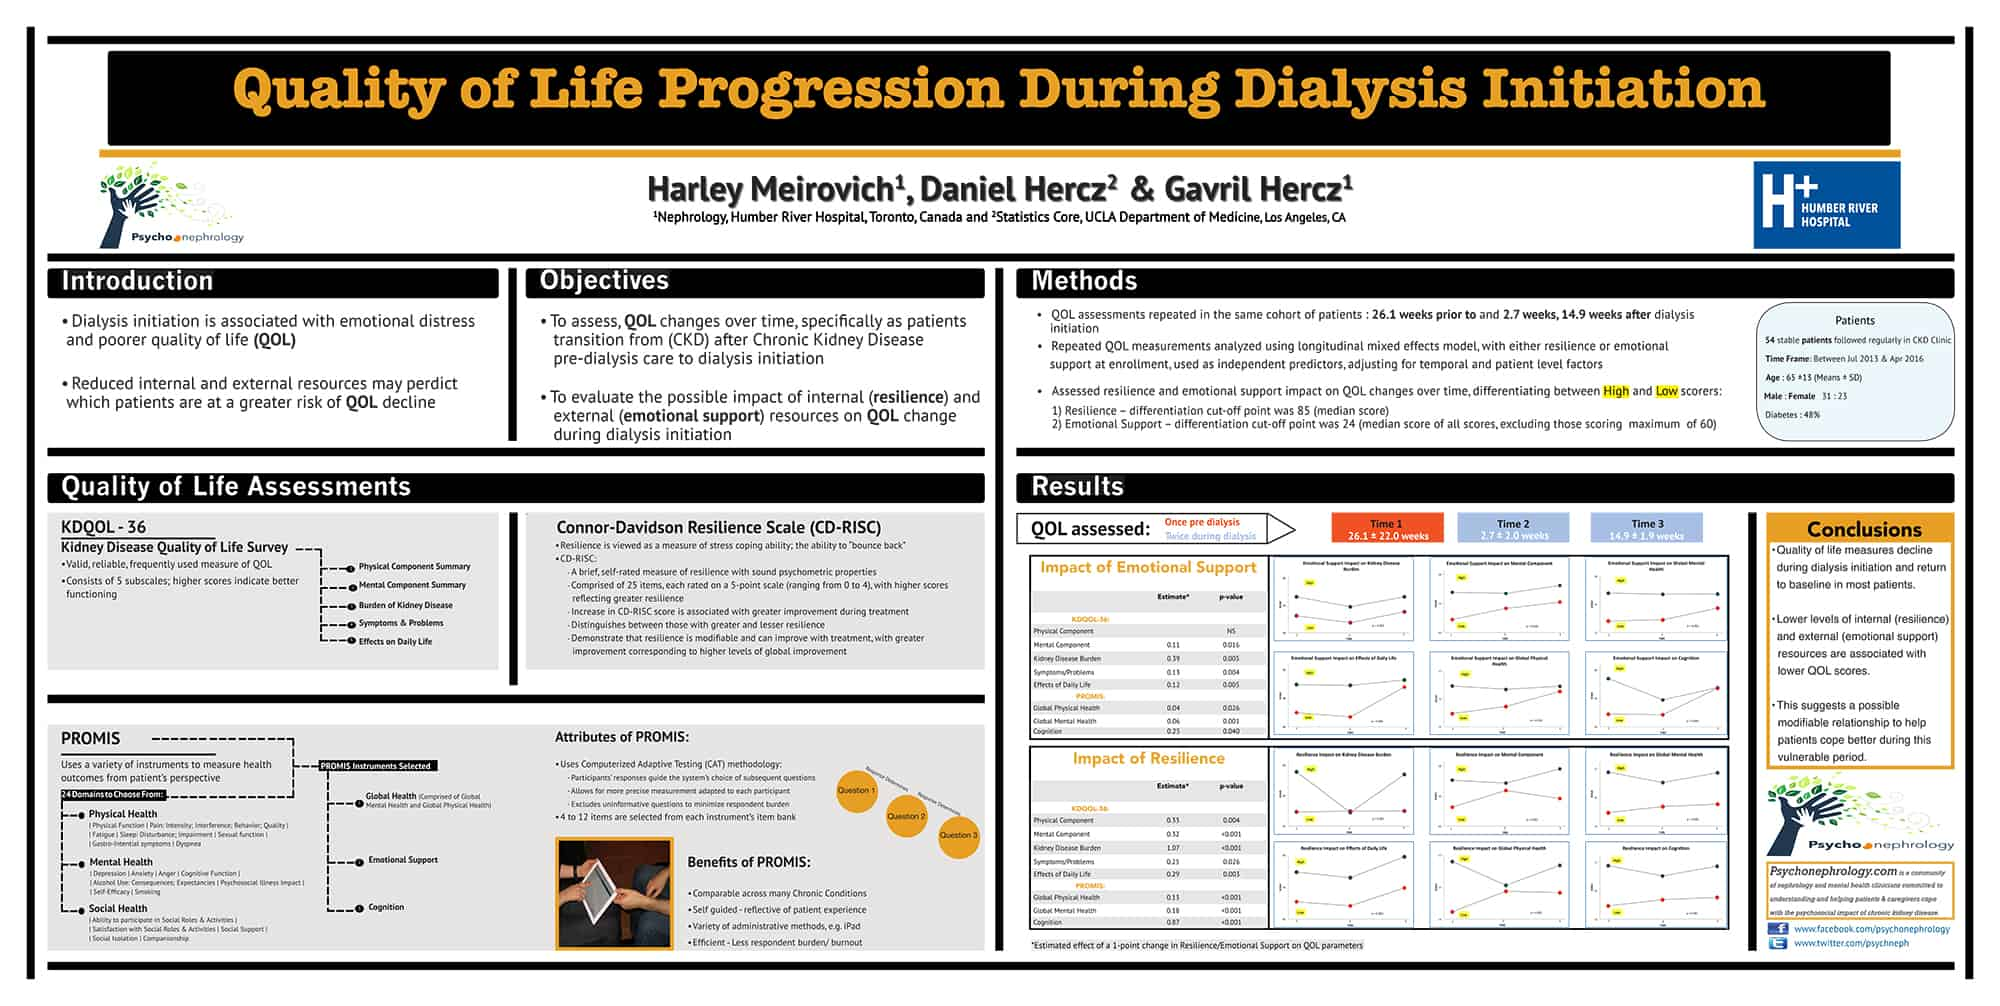 quality-of-life-progression-during-dialysis-initiation